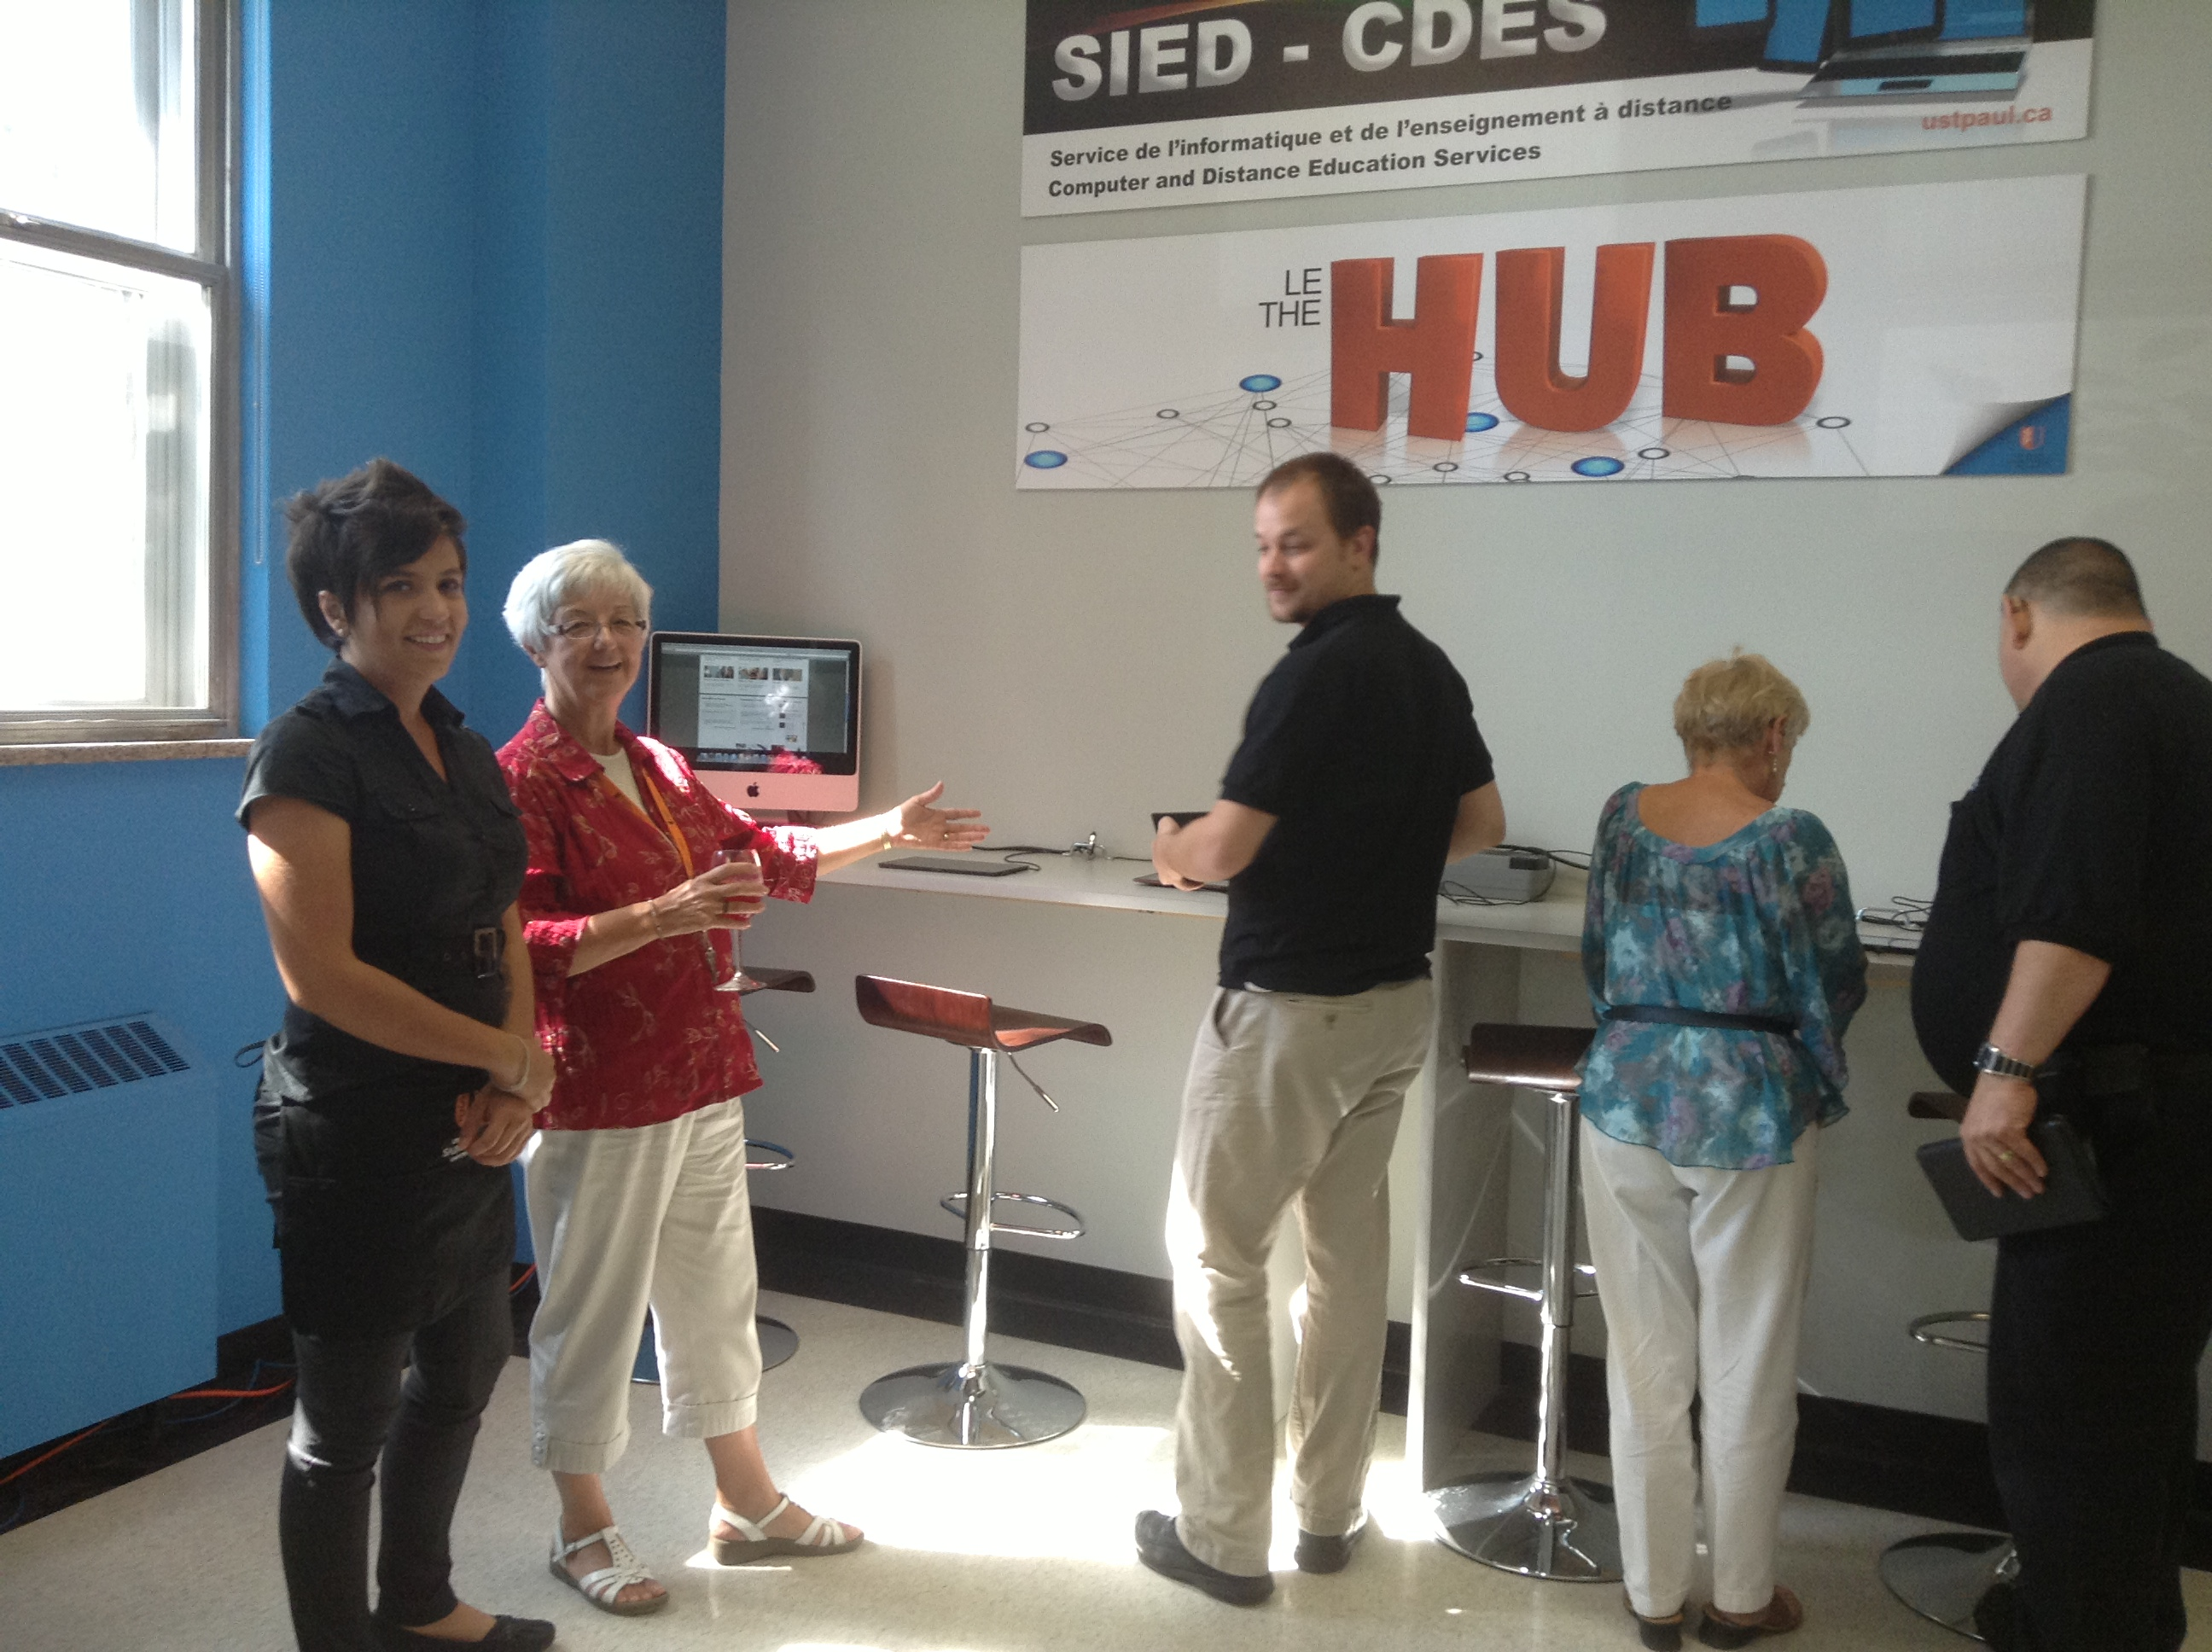 CDES and The Hub Launch